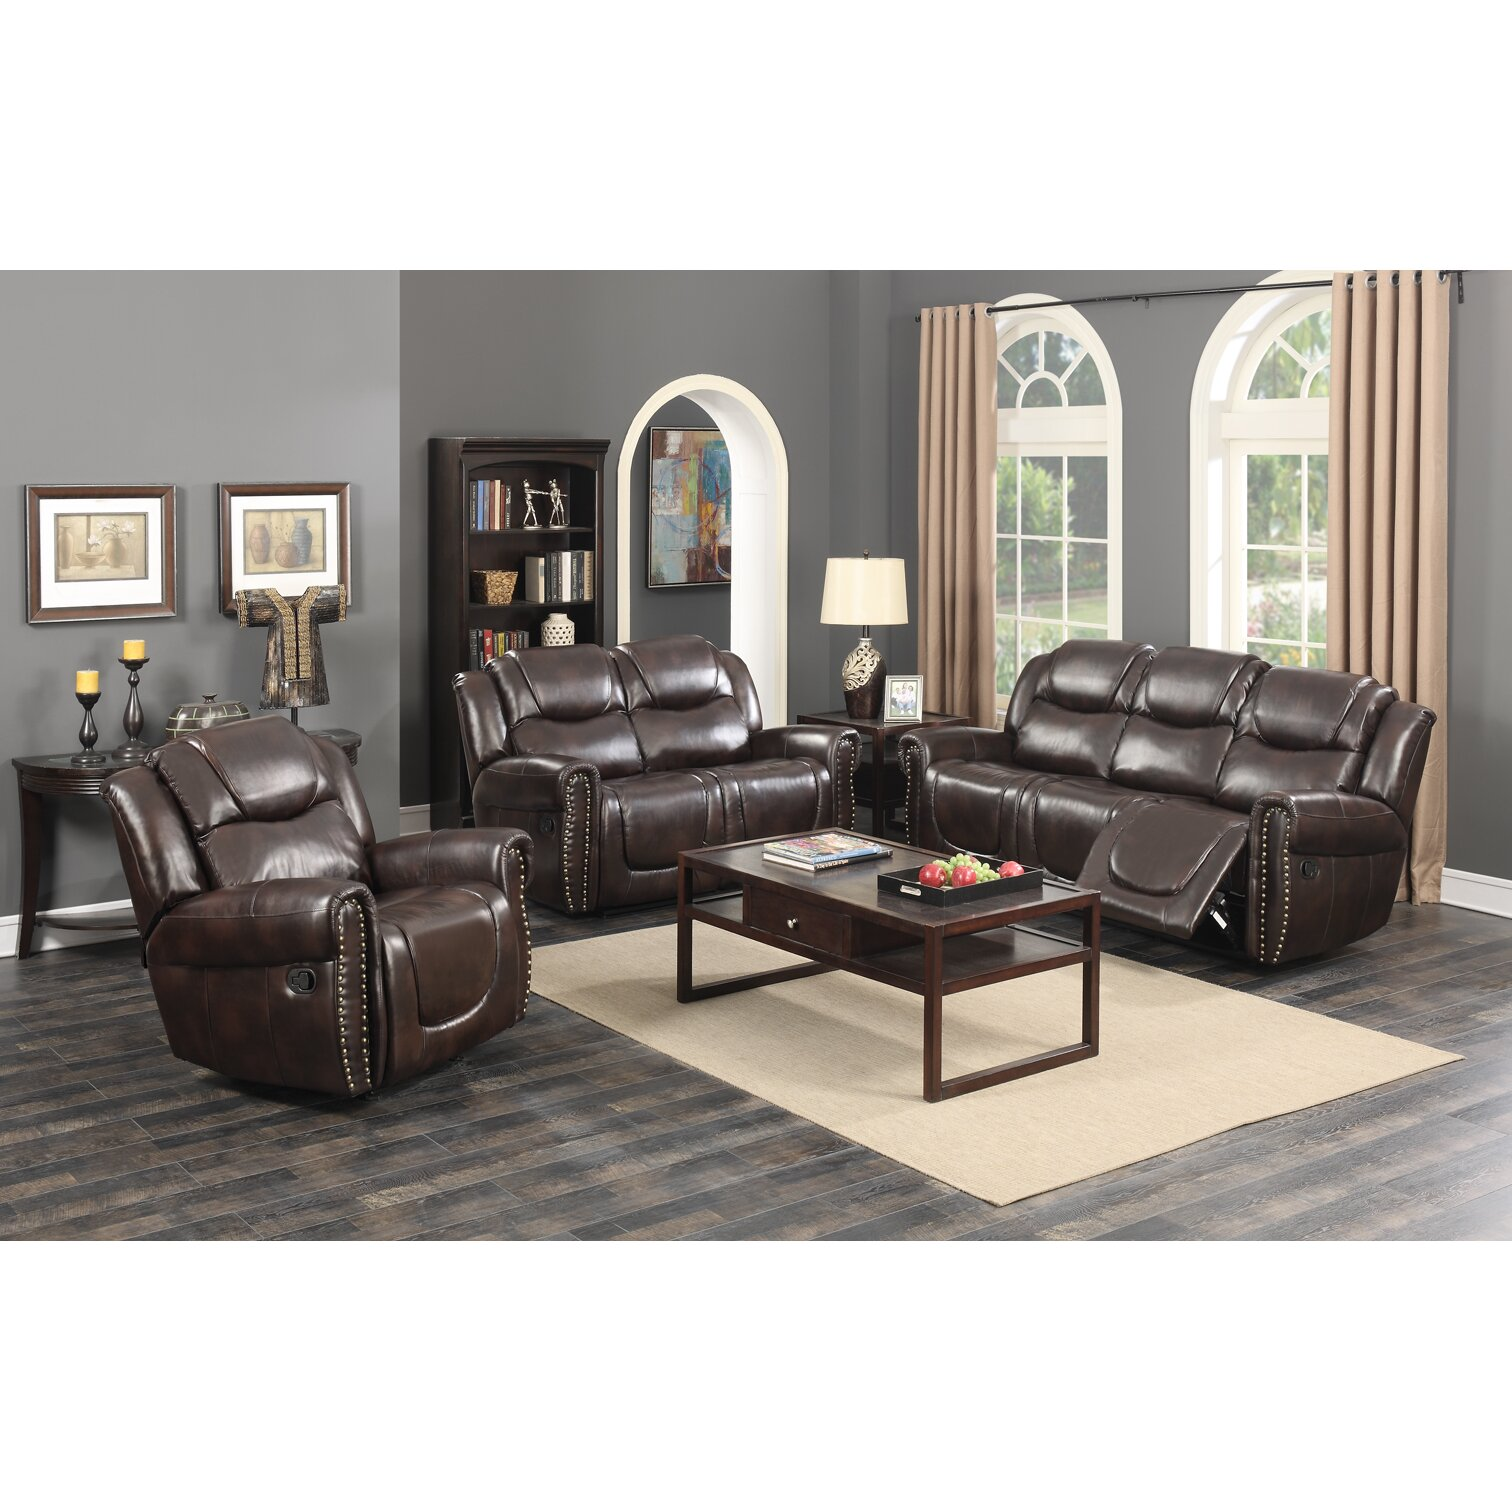 Living In Style Castrol Living Room Reclining Sofa